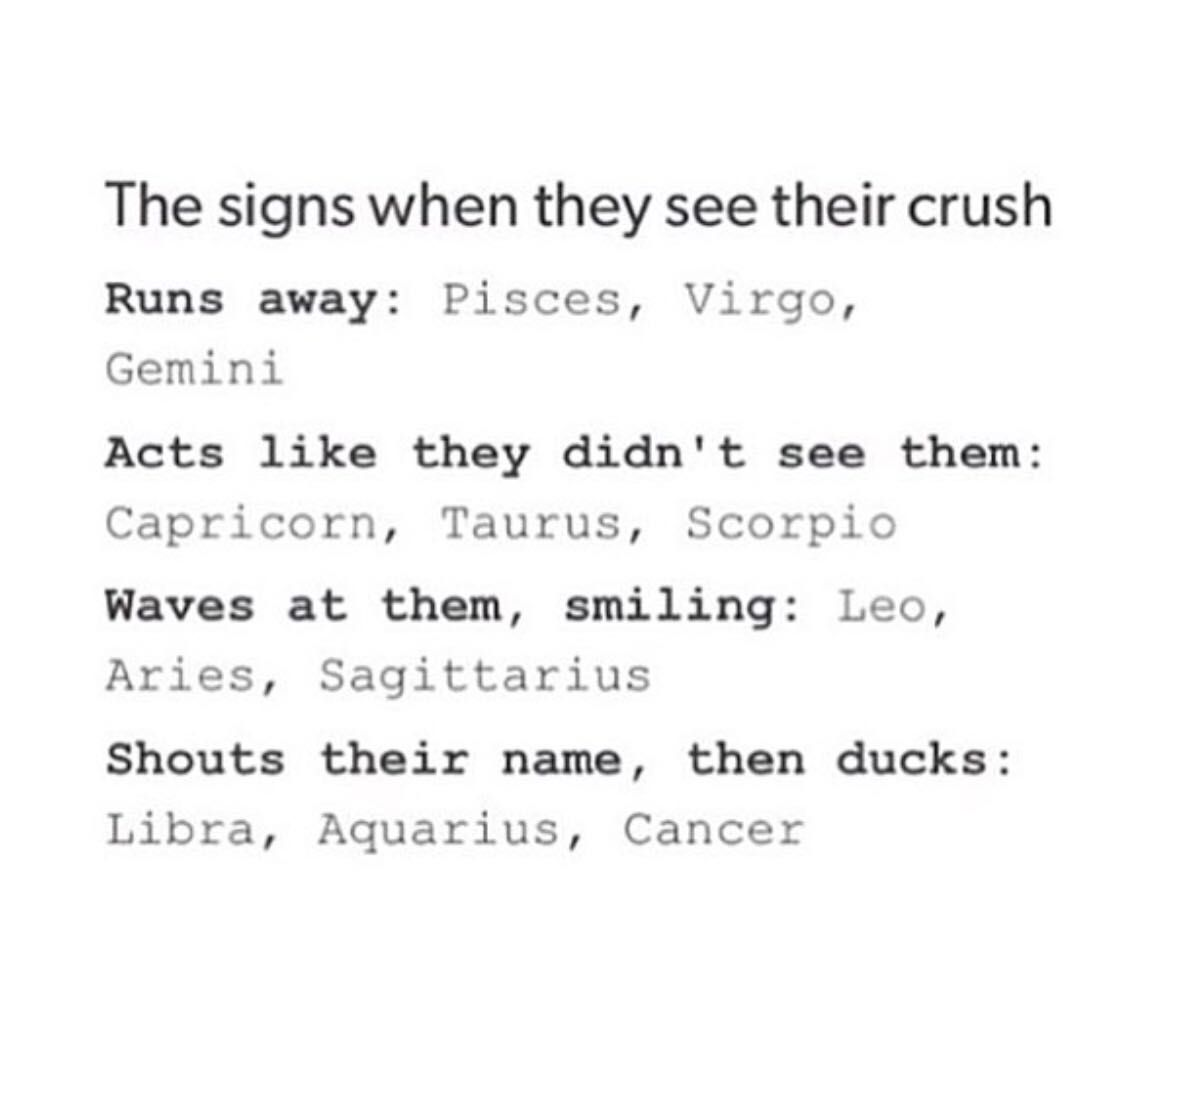 The Book of Zodiac Signs 2 - The Signs when they see their